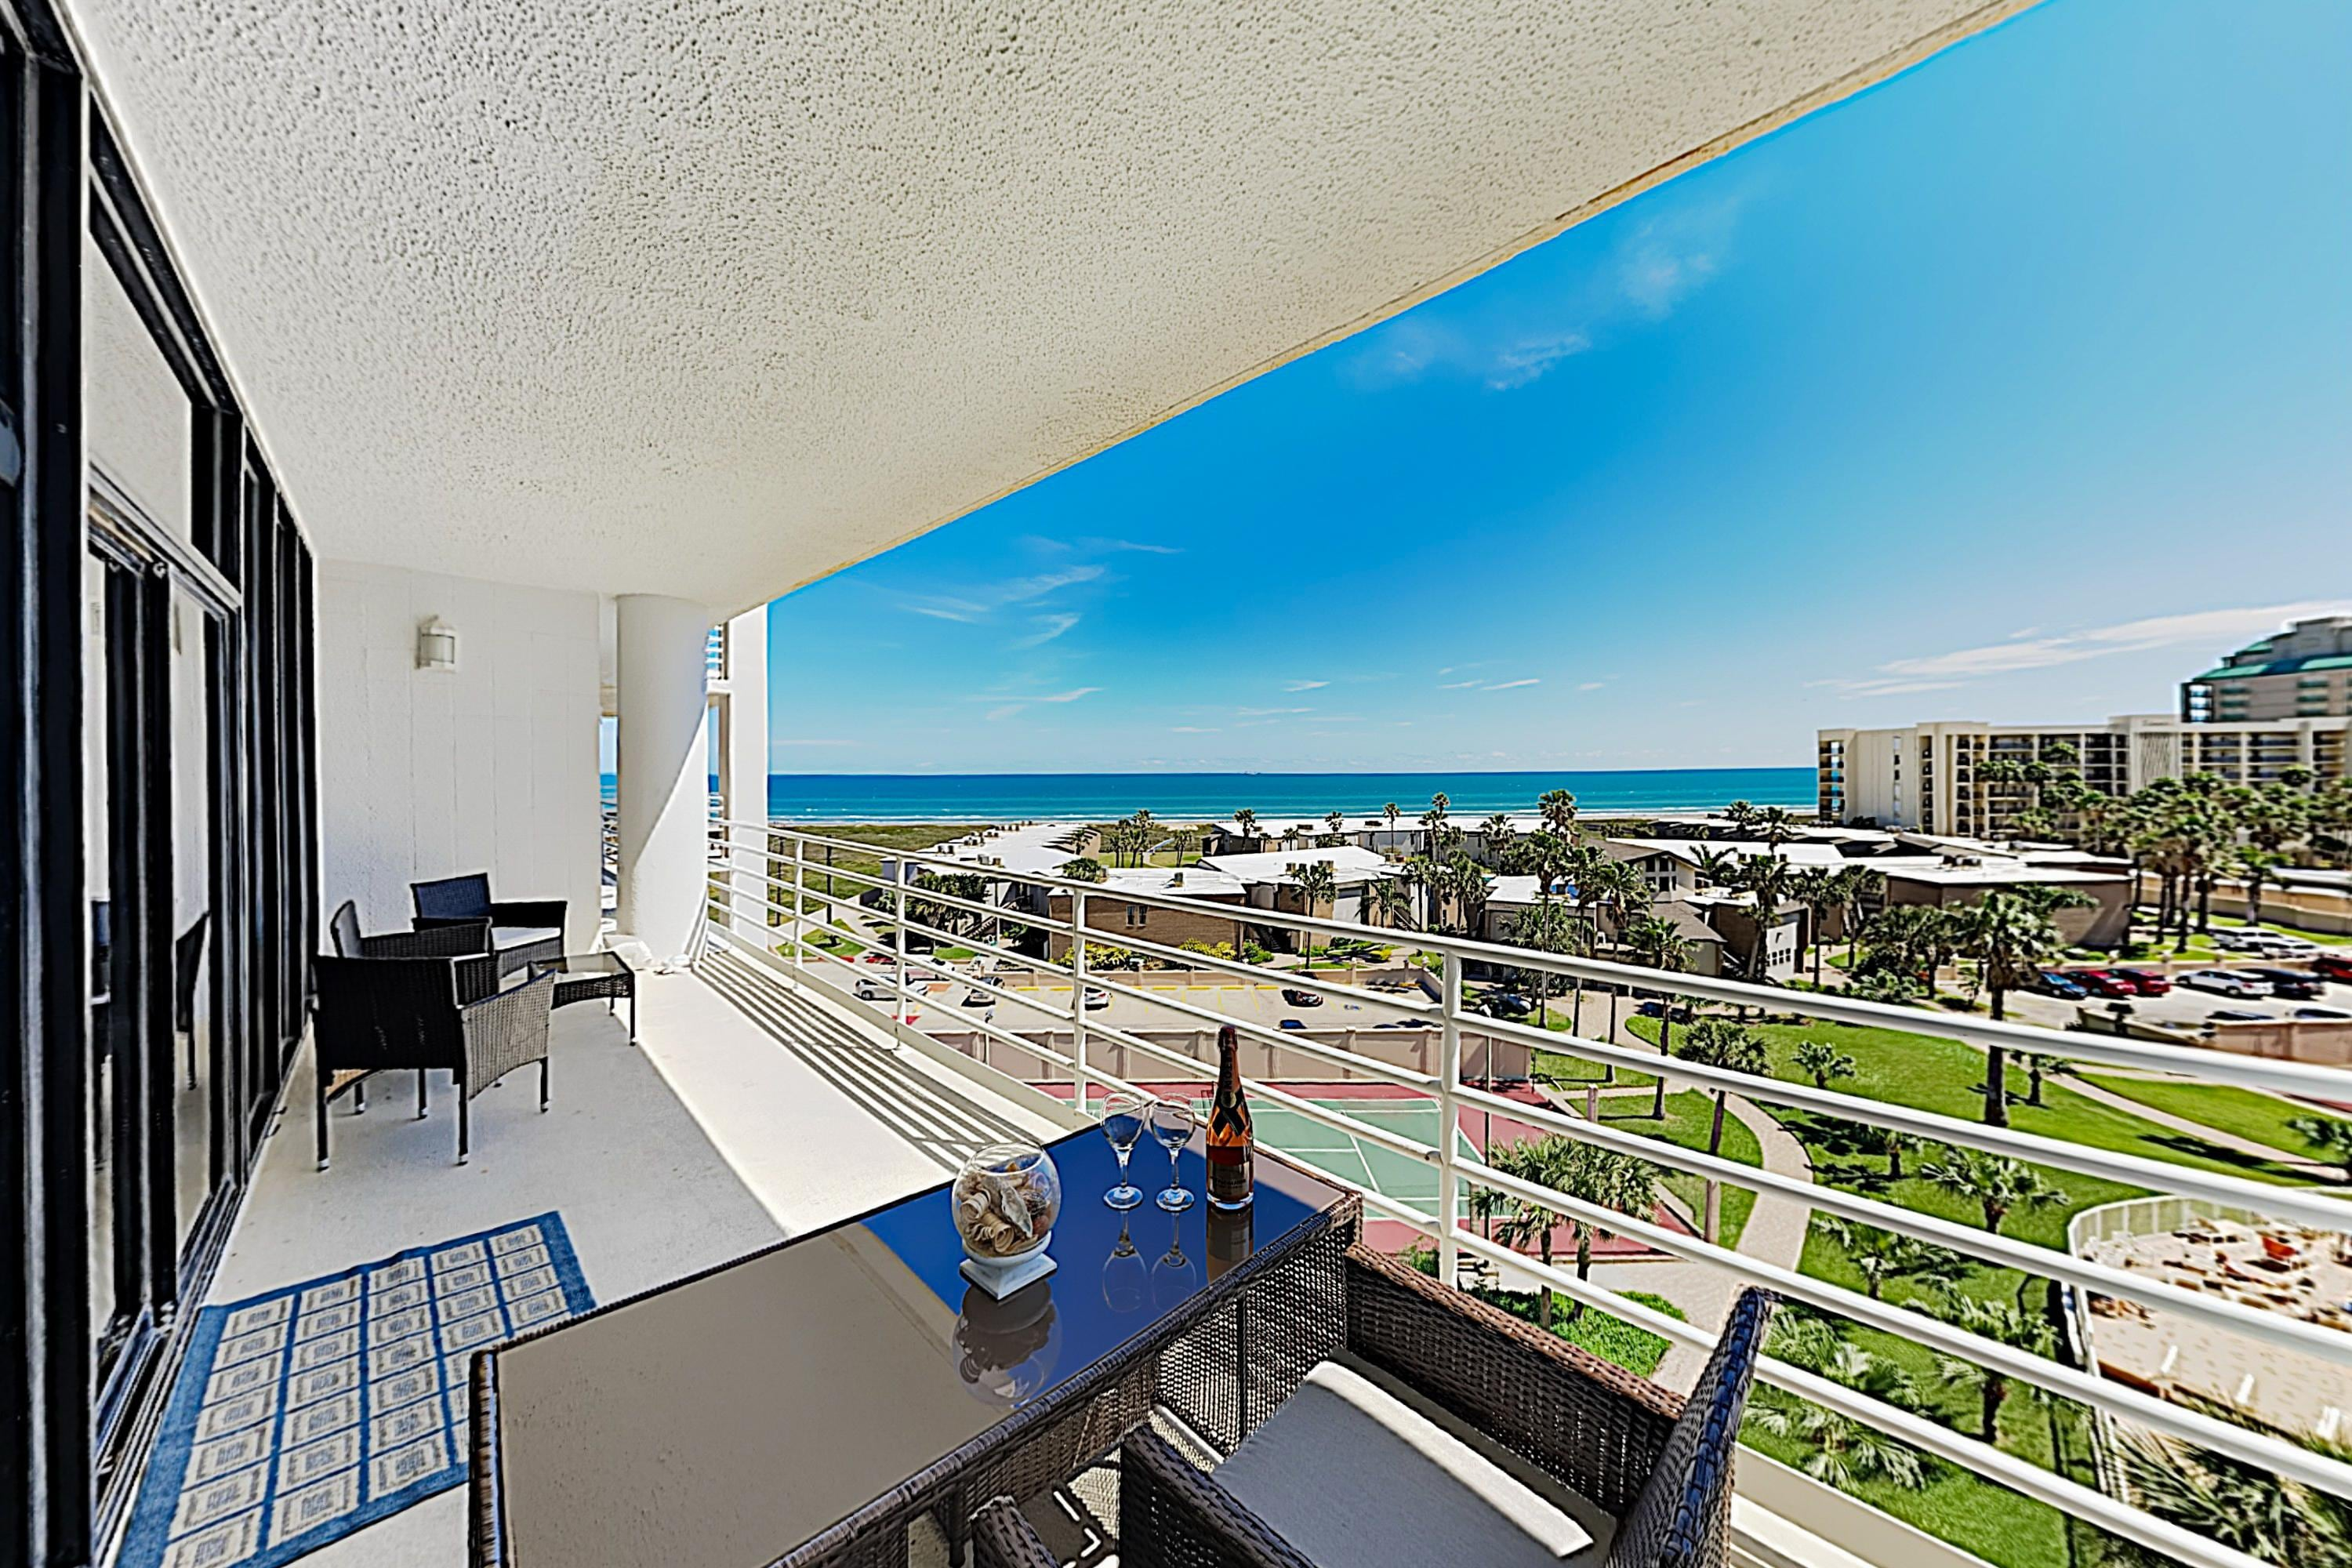 Property Image 1 - New Listing! Gulf-View Sunchase Condo w/ Pools